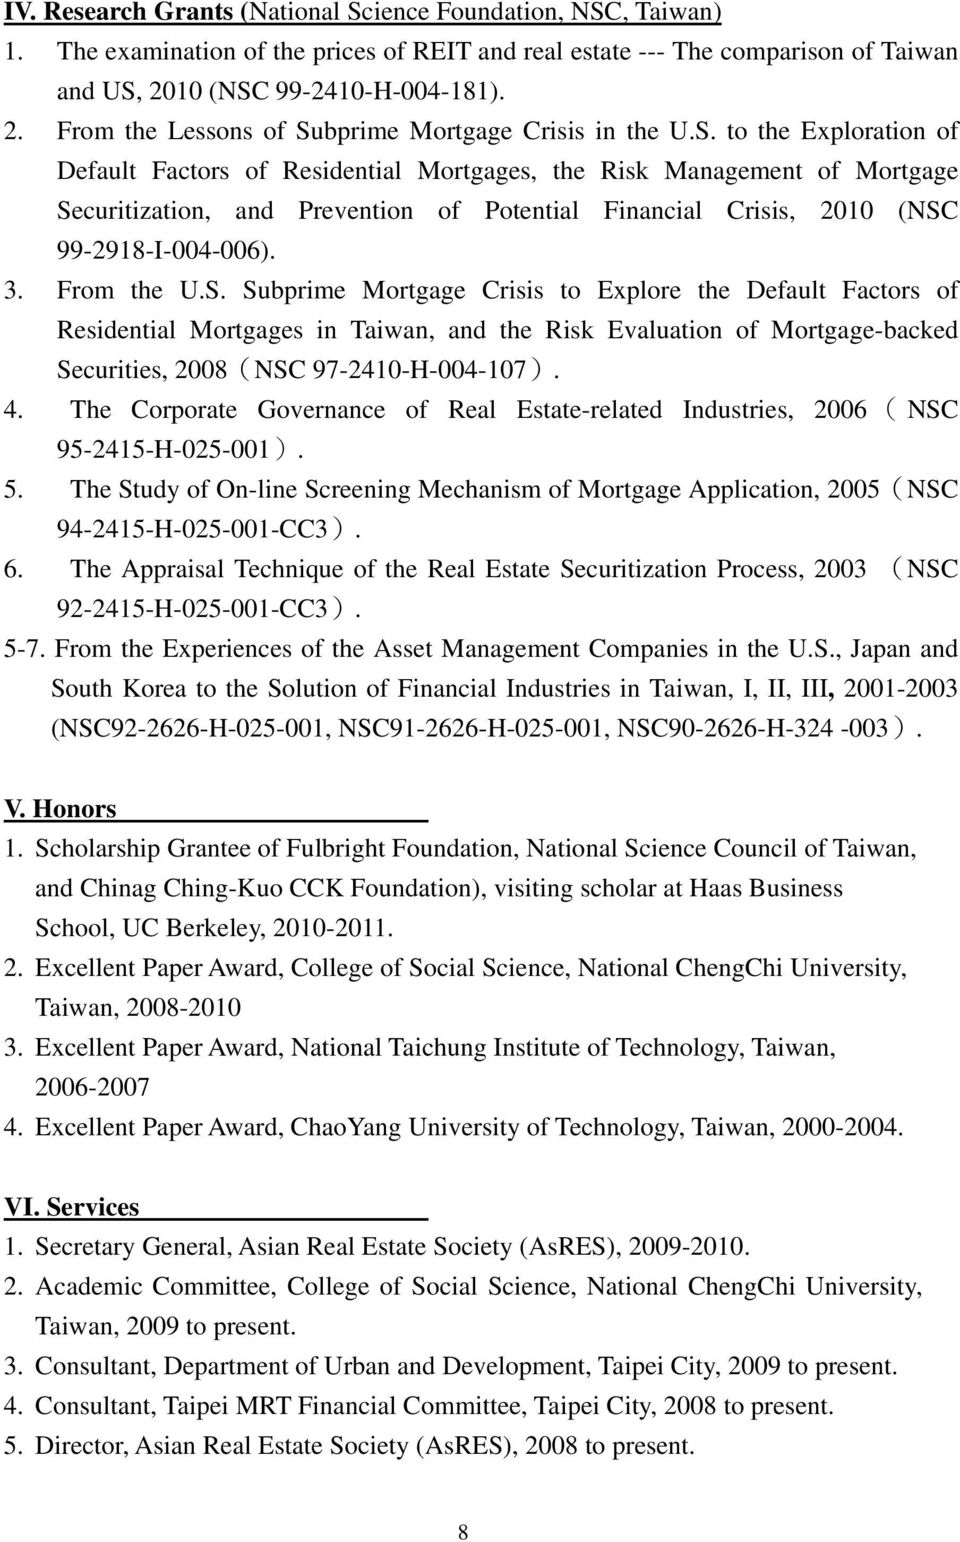 3. From the U.S. Subprime Mortgage Crisis to Explore the Default Factors of Residential Mortgages in Taiwan, and the Risk Evaluation of Mortgage-backed Securities, 2008(NSC 97-2410-H-004-107). 4.